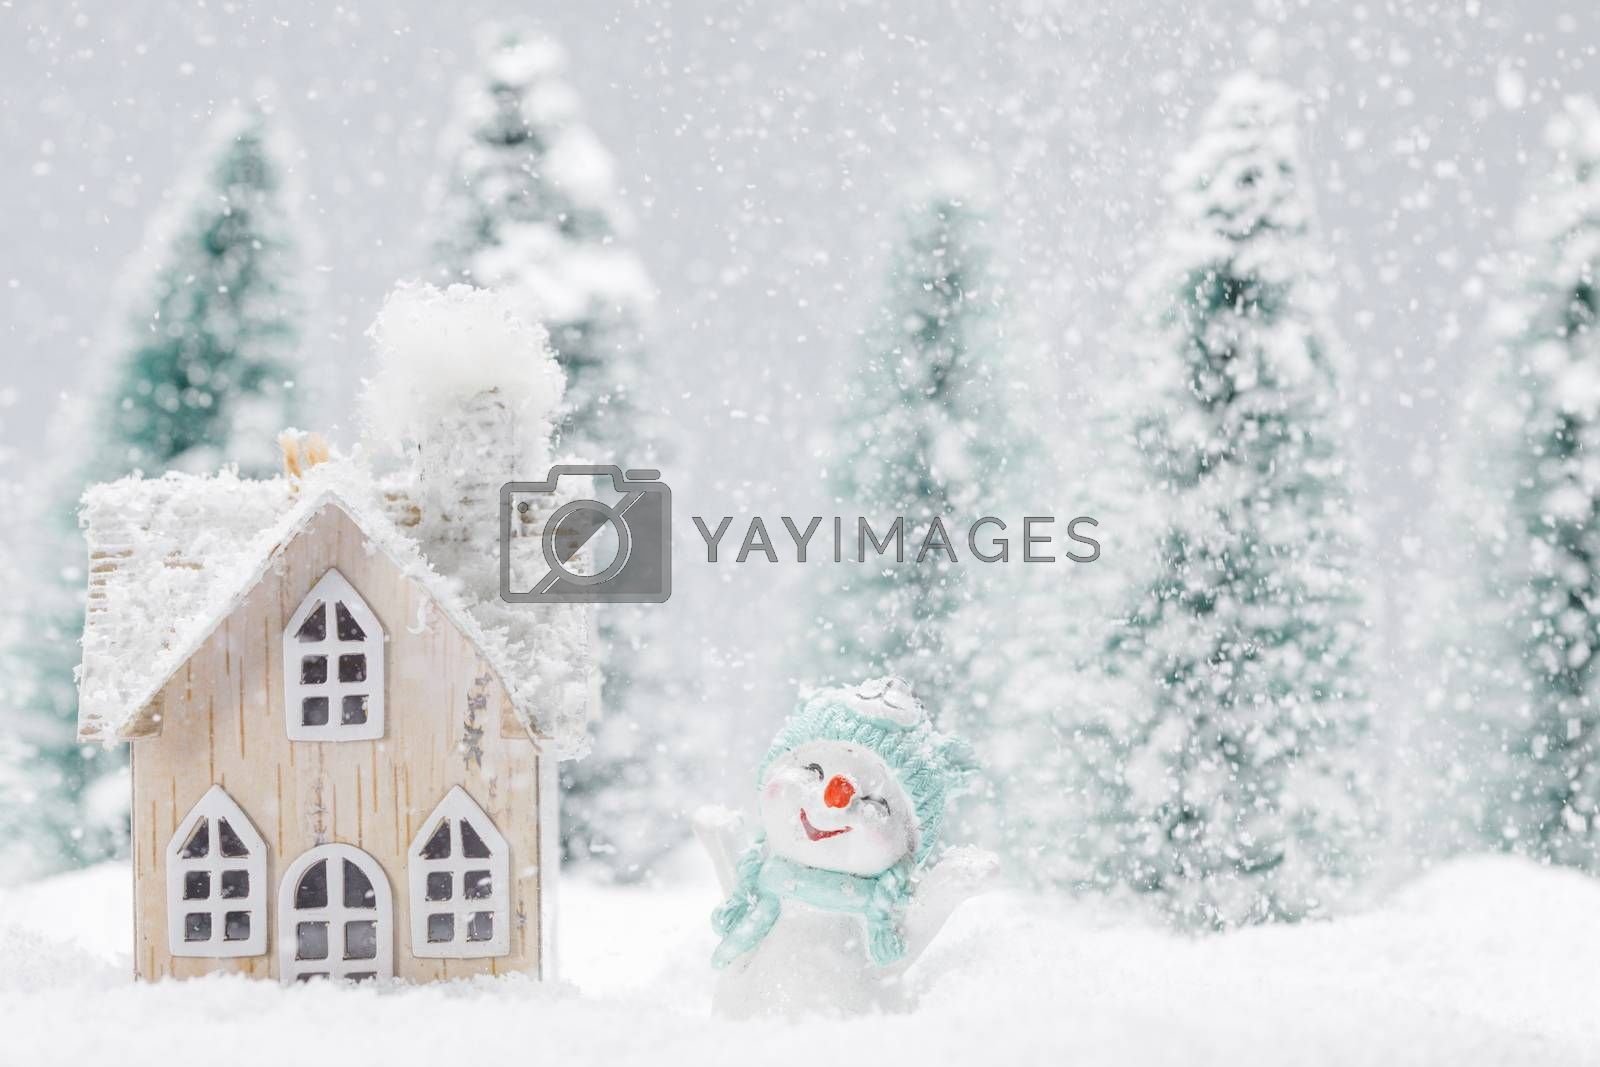 Small decorative snowman near wooden house in fir forest under falling snow